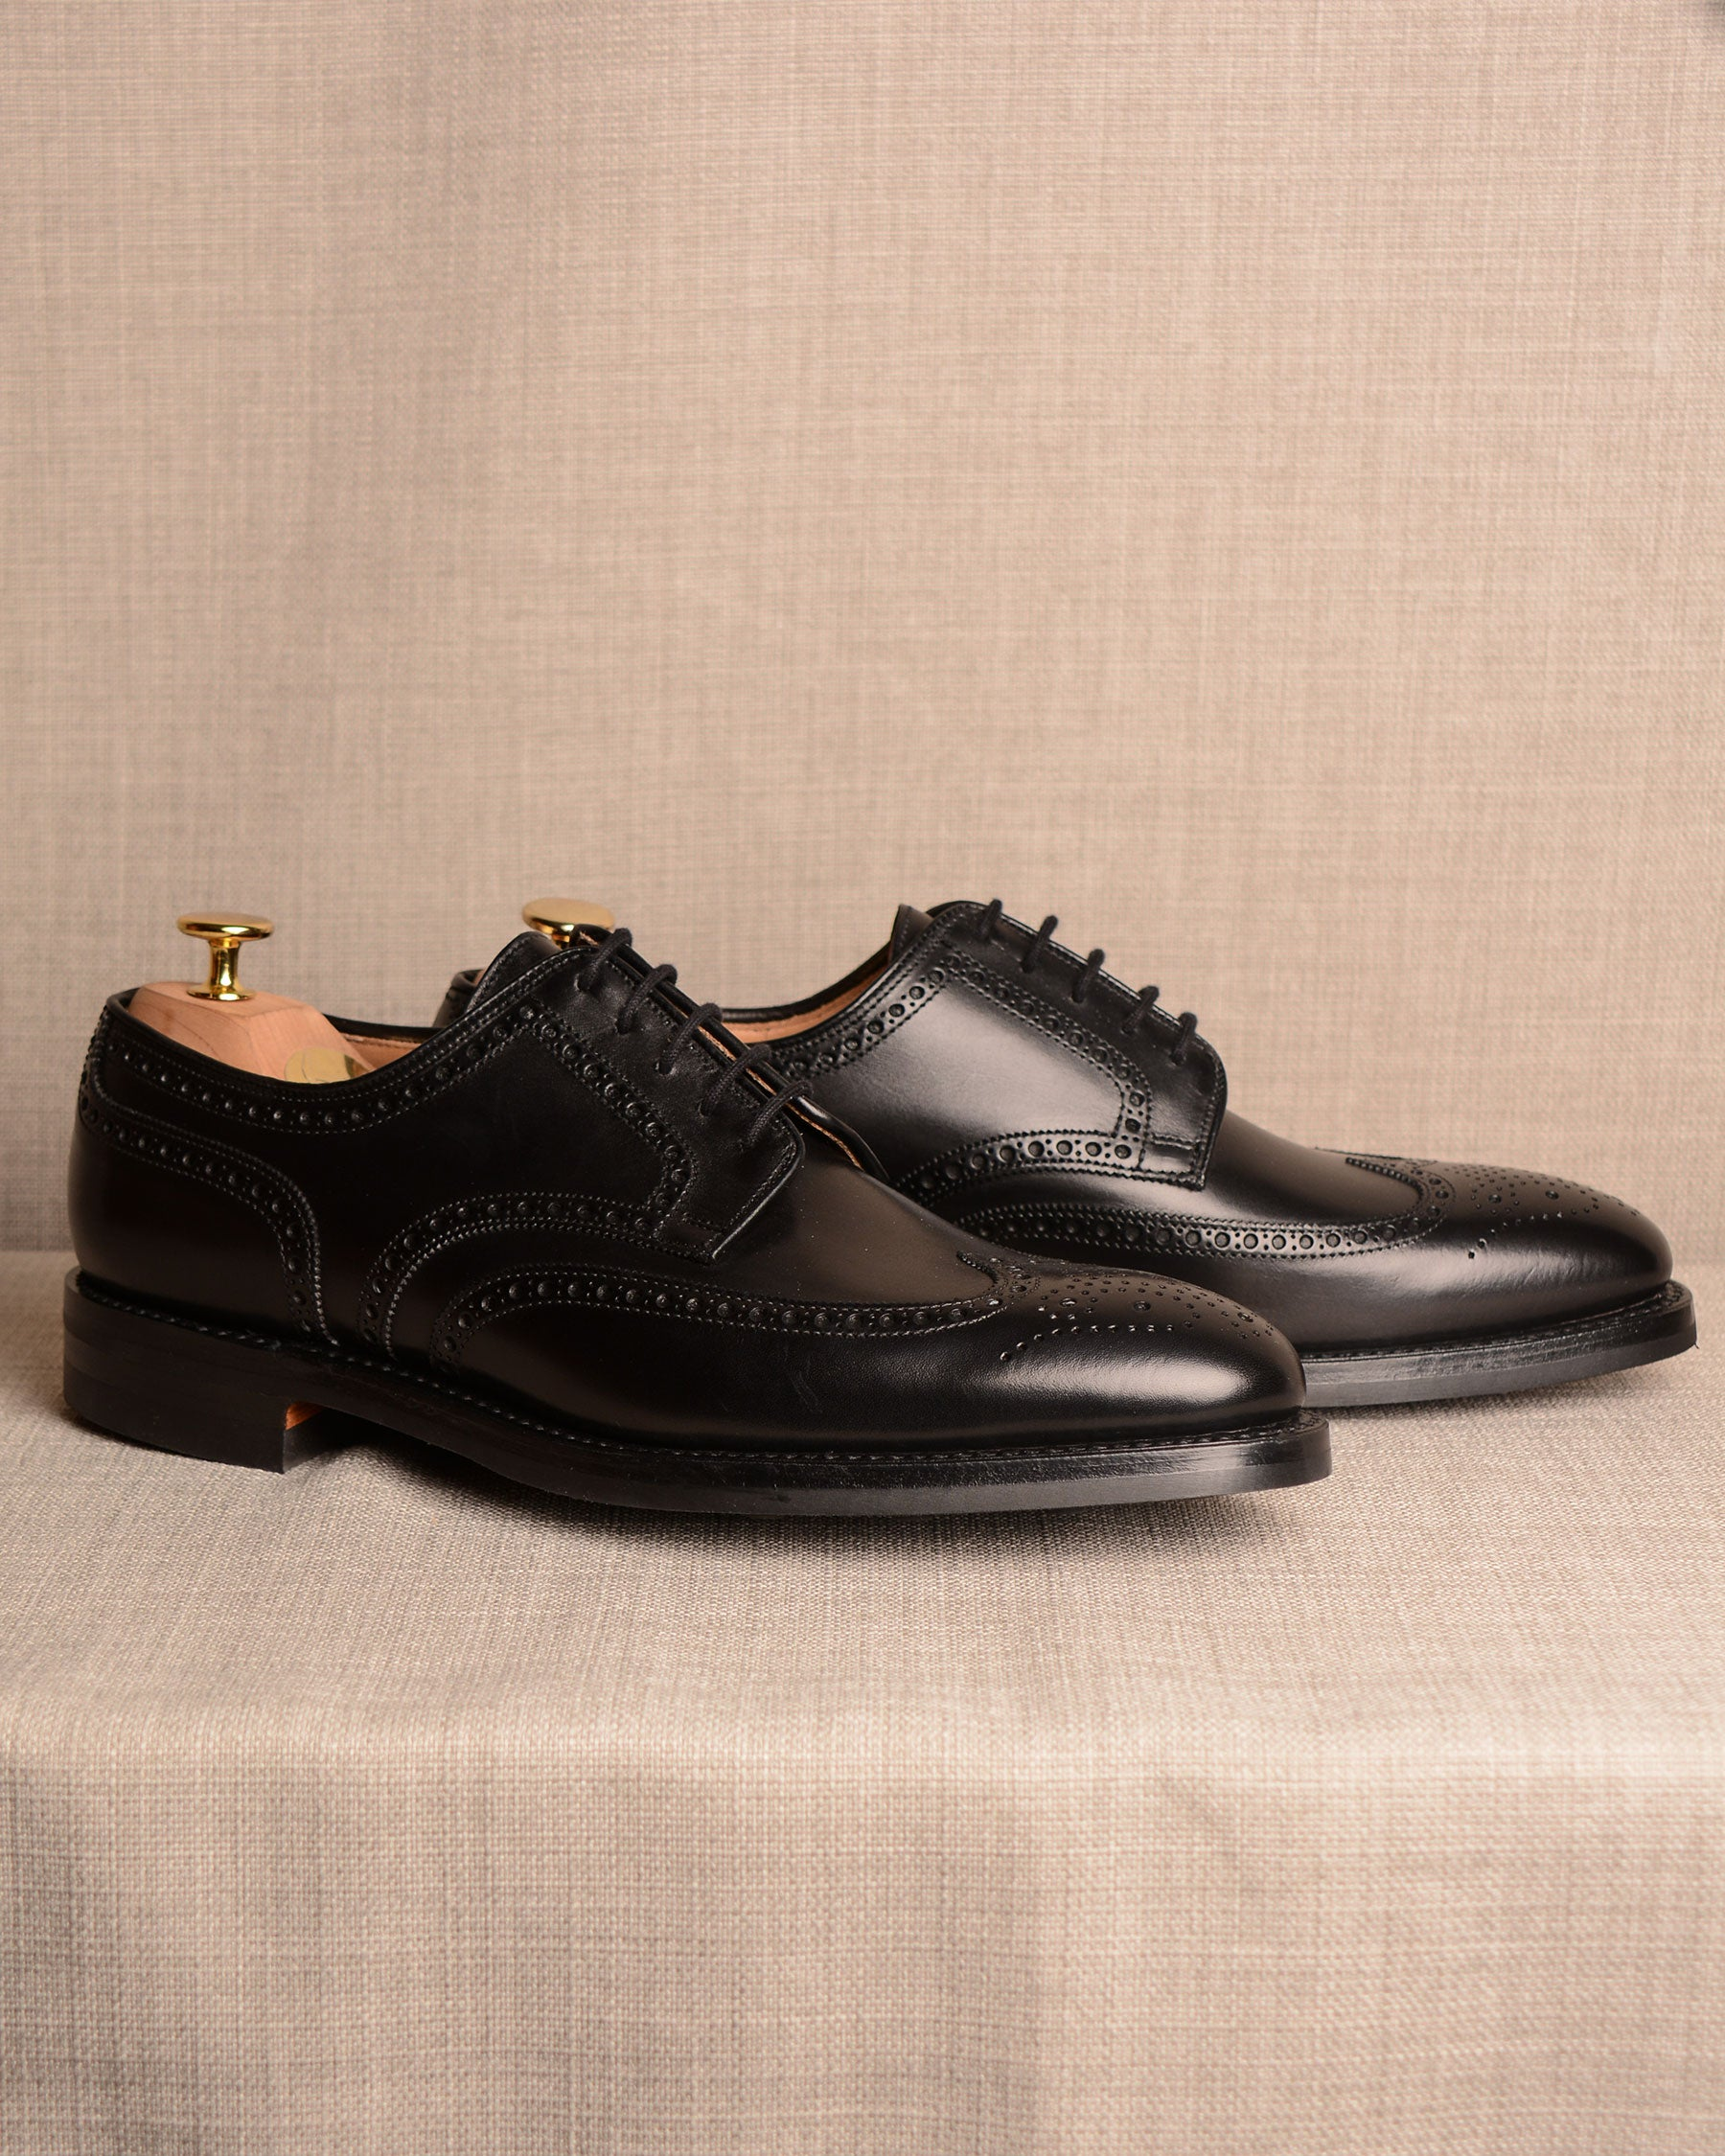 Crockett & Jones Swansea - Black